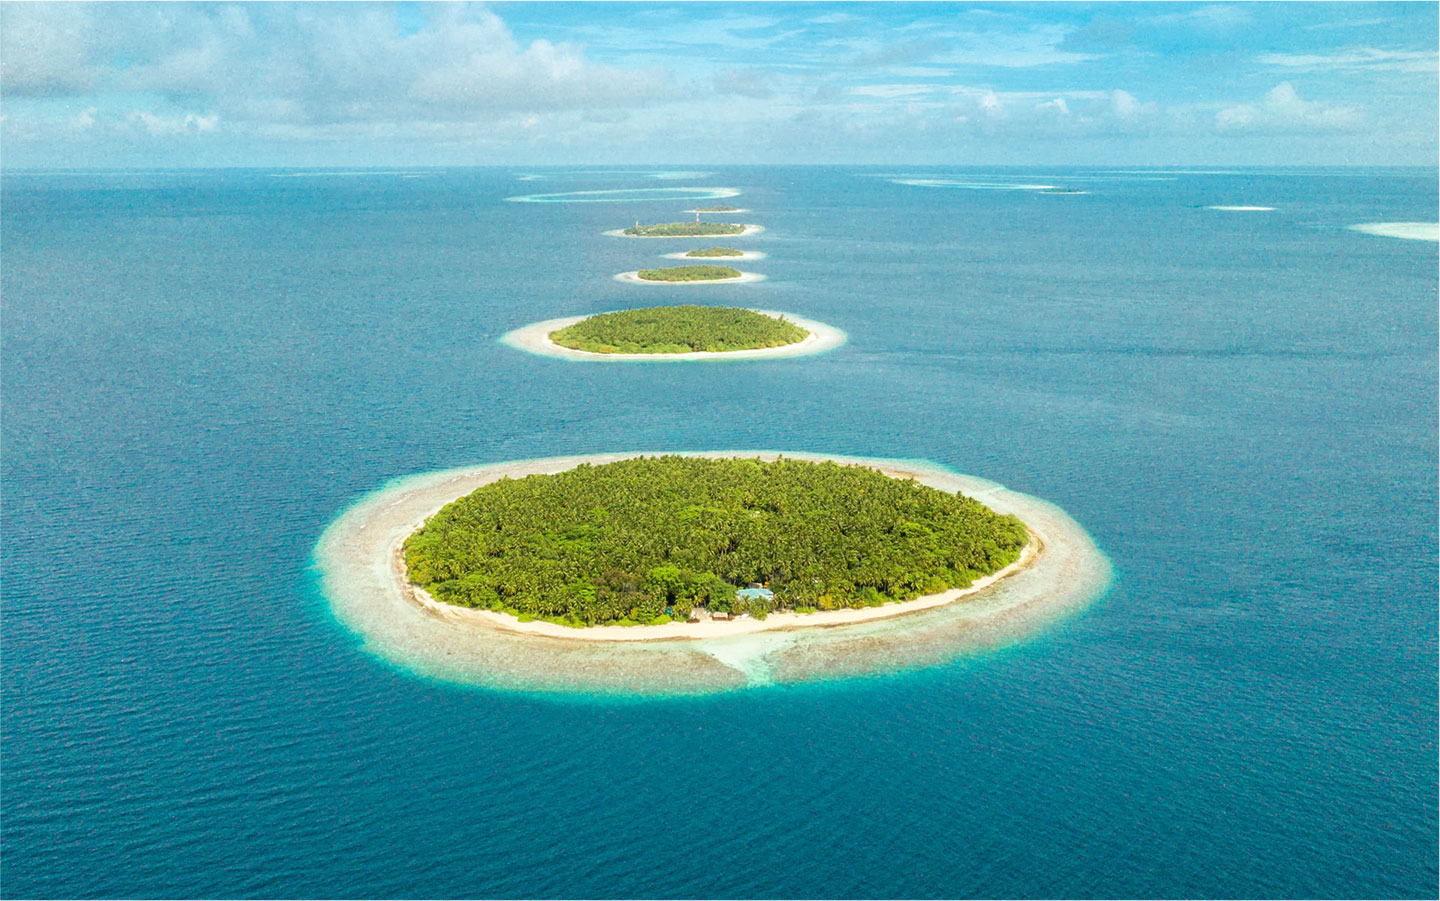 Green islands, Maldives